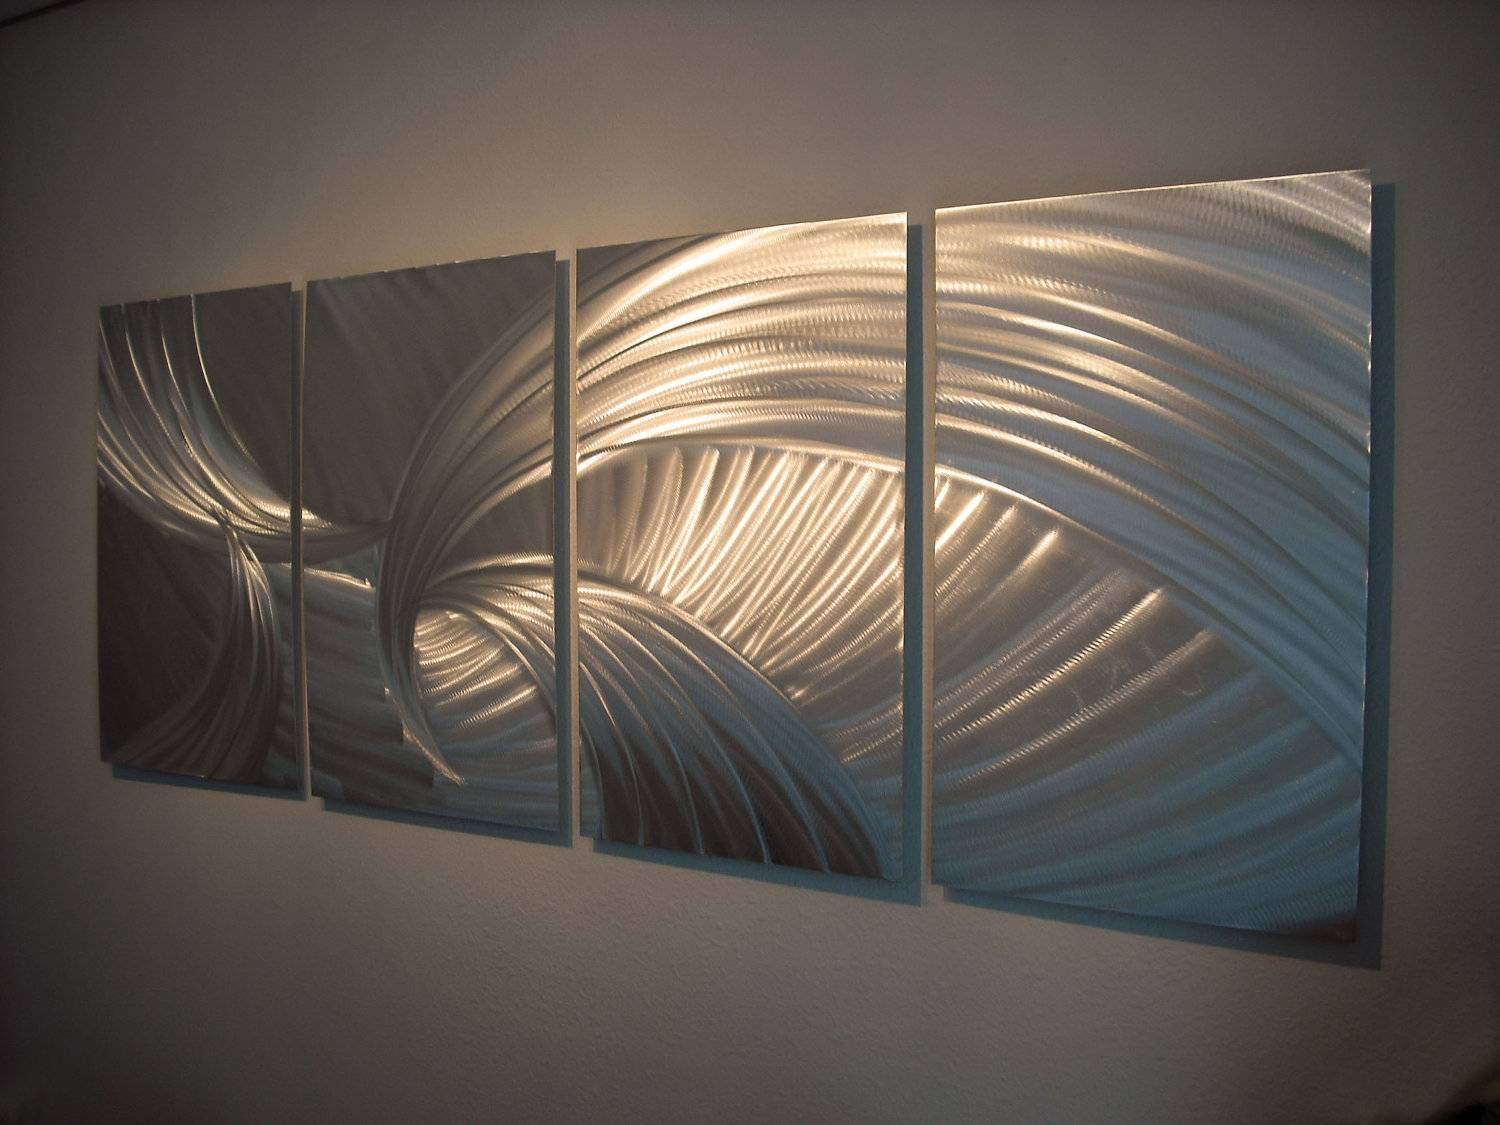 Inspiring Design Metal Wall Designs 1000 Images About Metal Art On Pertaining To Most Recently Released Contemporary Metal Wall Art Sculpture (View 14 of 20)